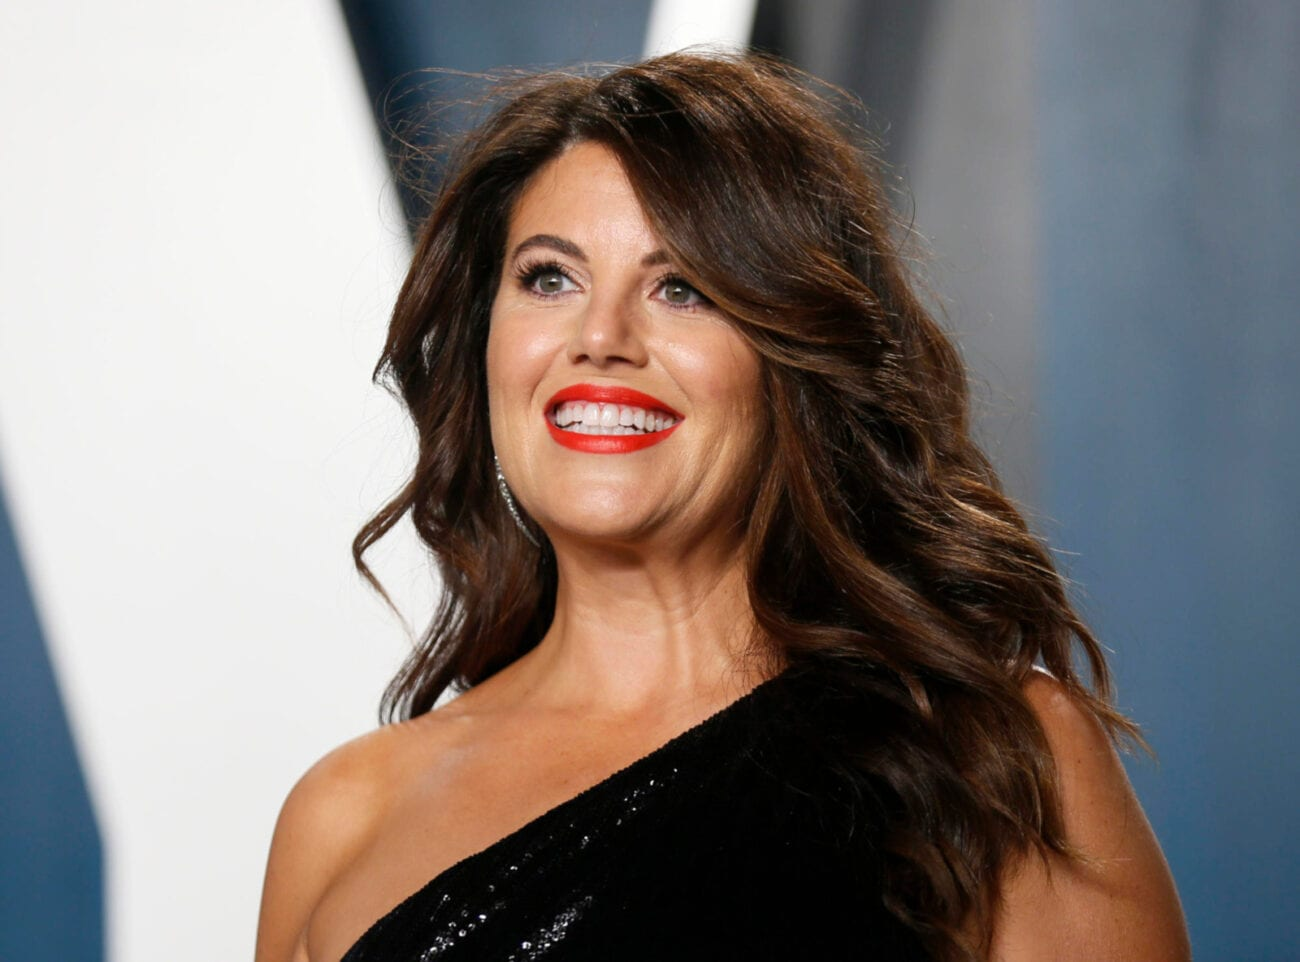 Monica Lewinsky is remembered for the White House scandal that rocked the 1990s. Now, she's rocking Twitter with her sense of humor. Check it out!